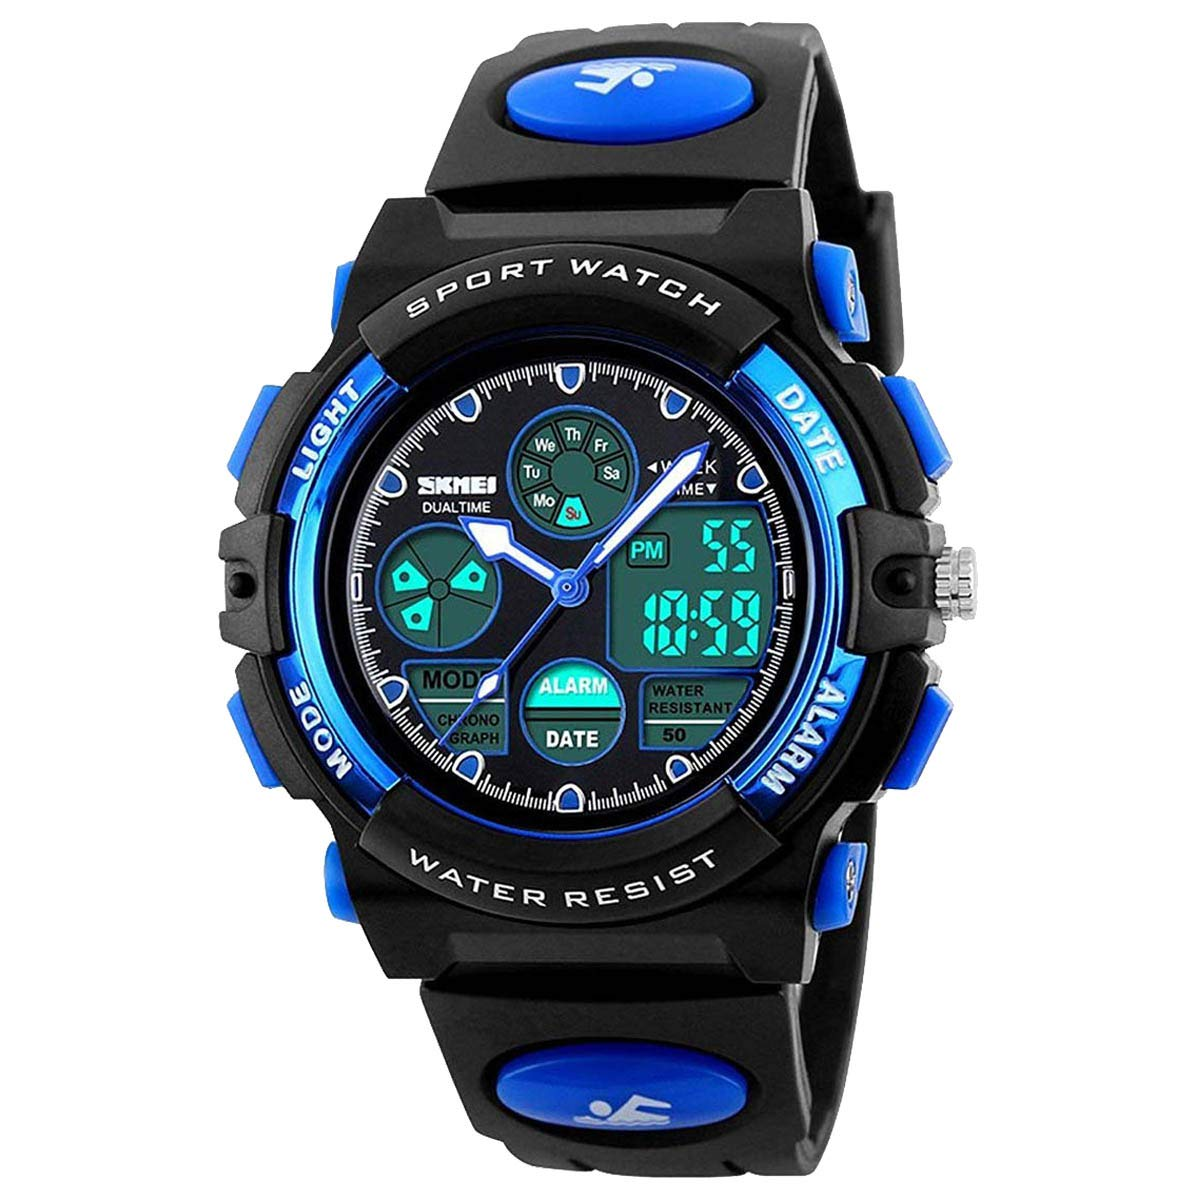 Kids Watches for Boys Girls Digital Waterproof Sports with Alarm Stopwatch LED Electronic Quartz Wrist watch Student Youth teens children1163